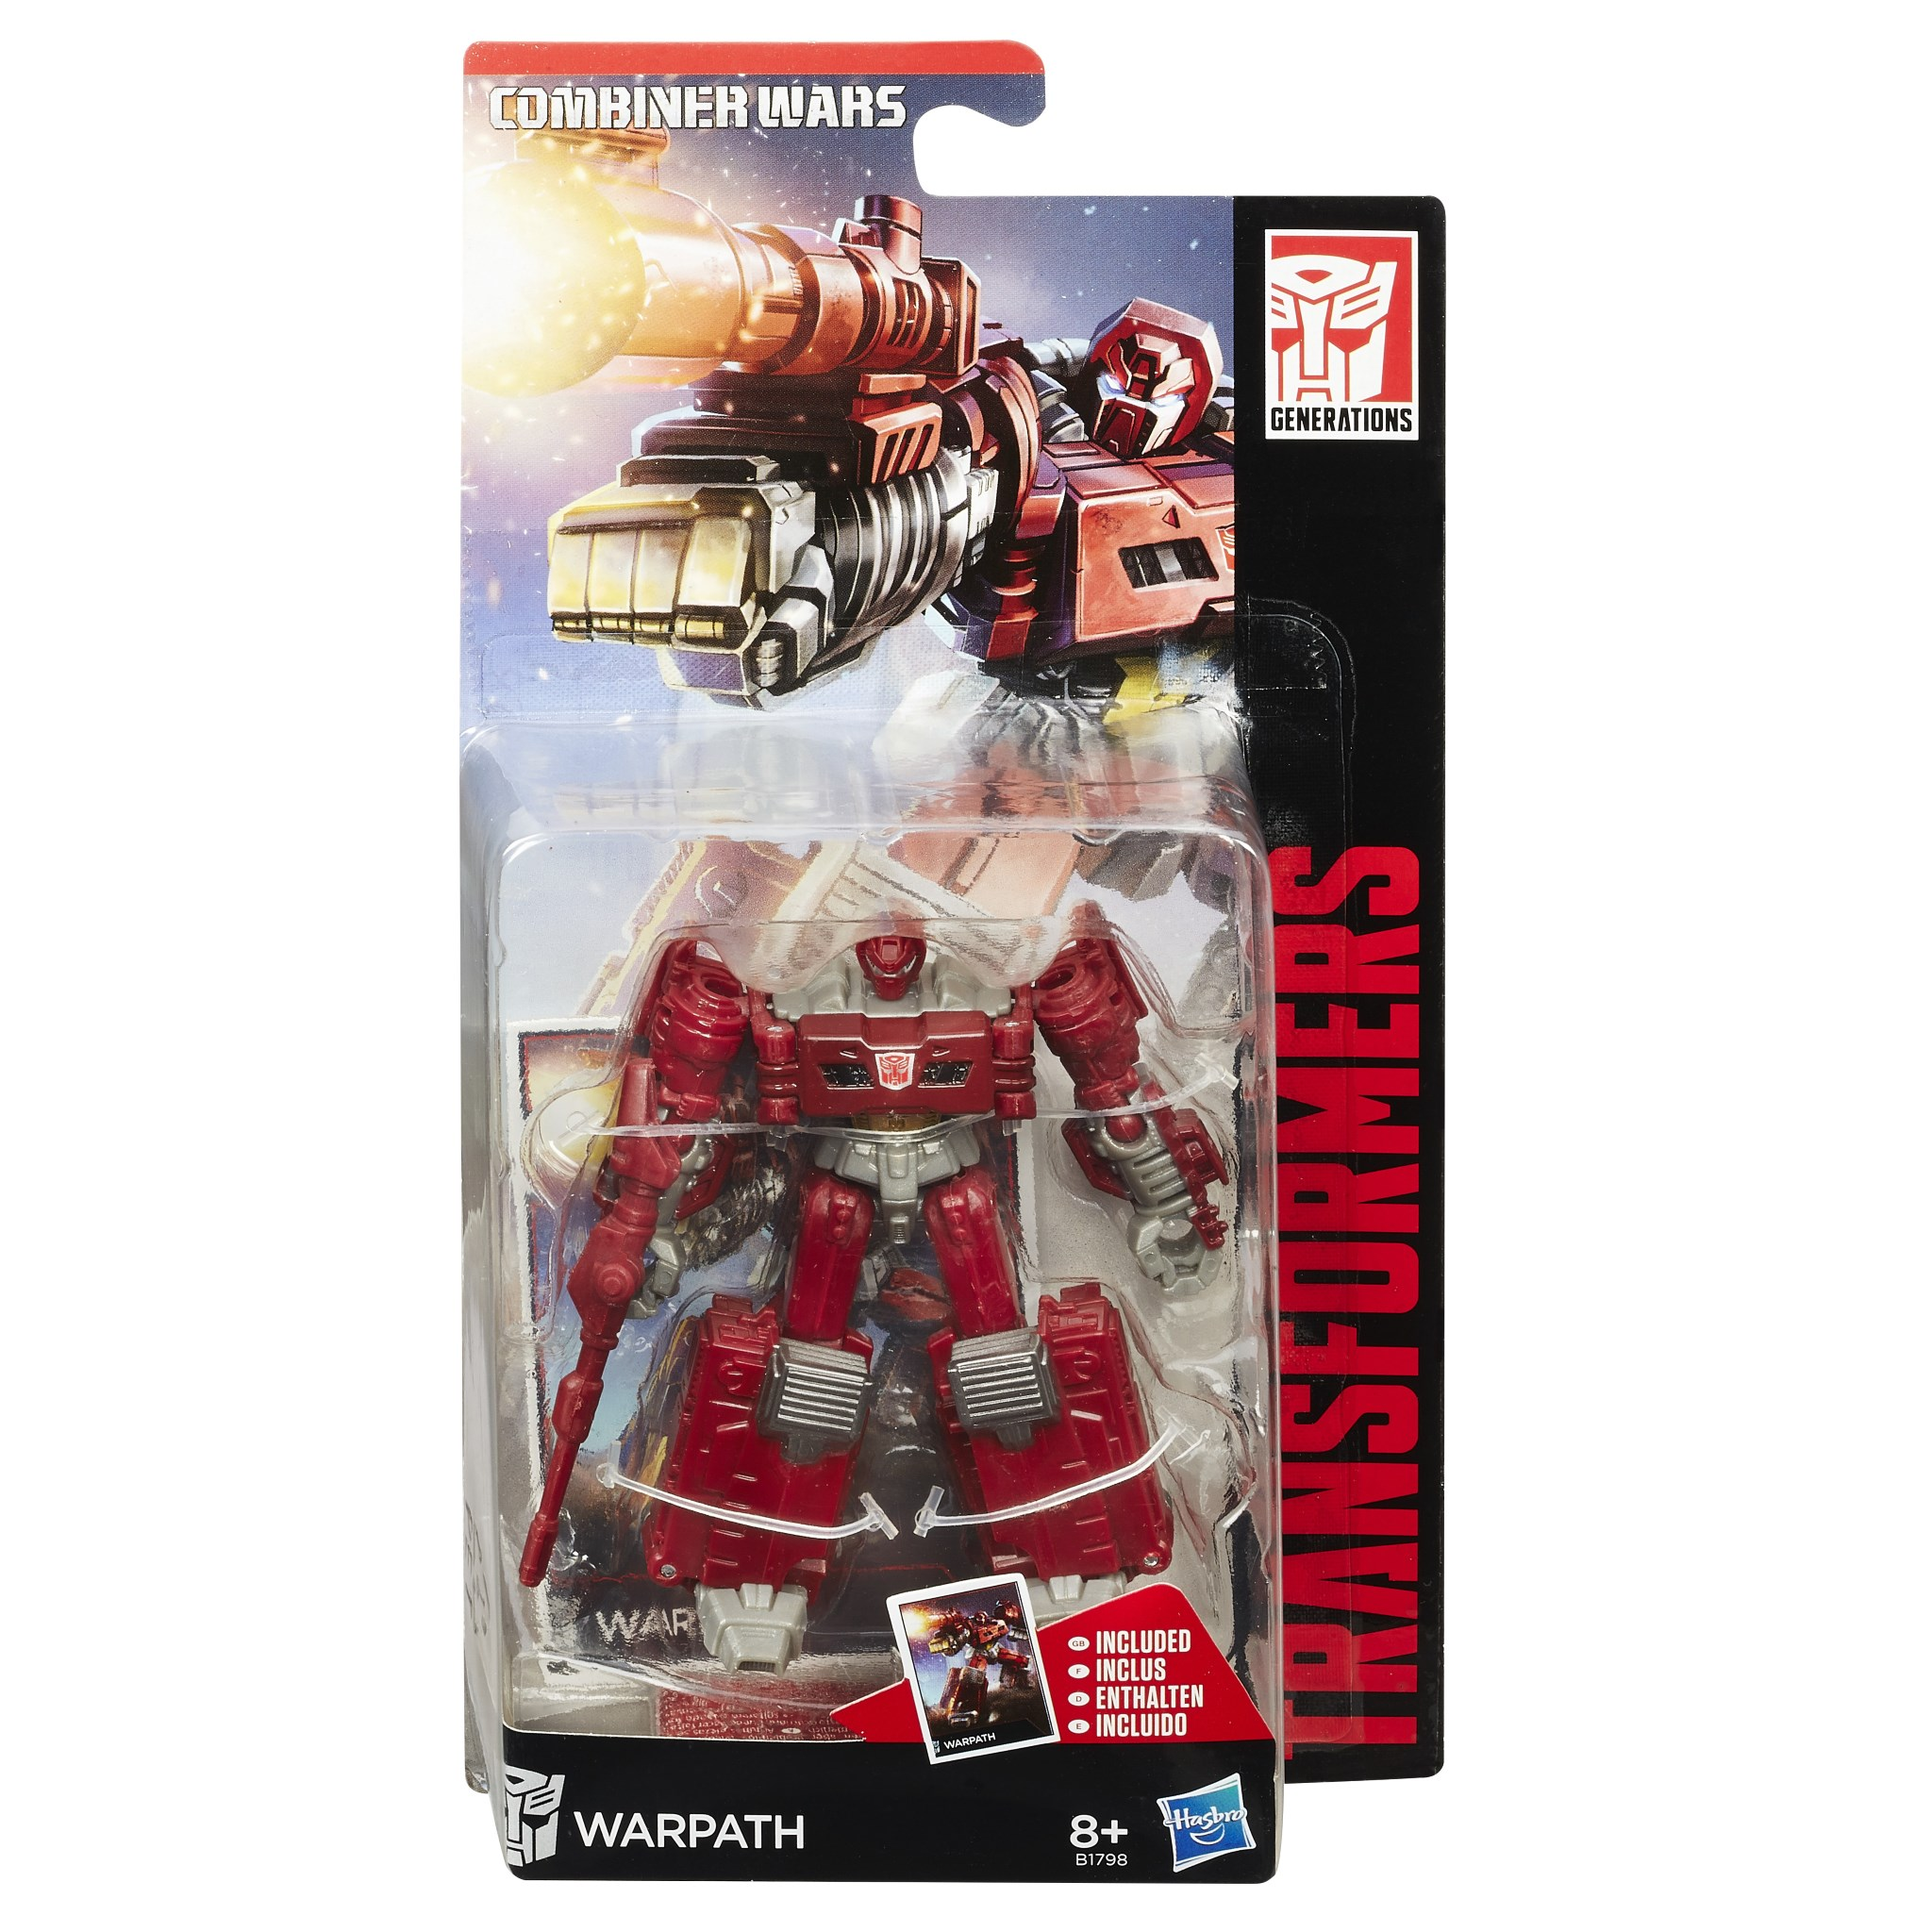 Transformers Generations Combiner Wars Warpath